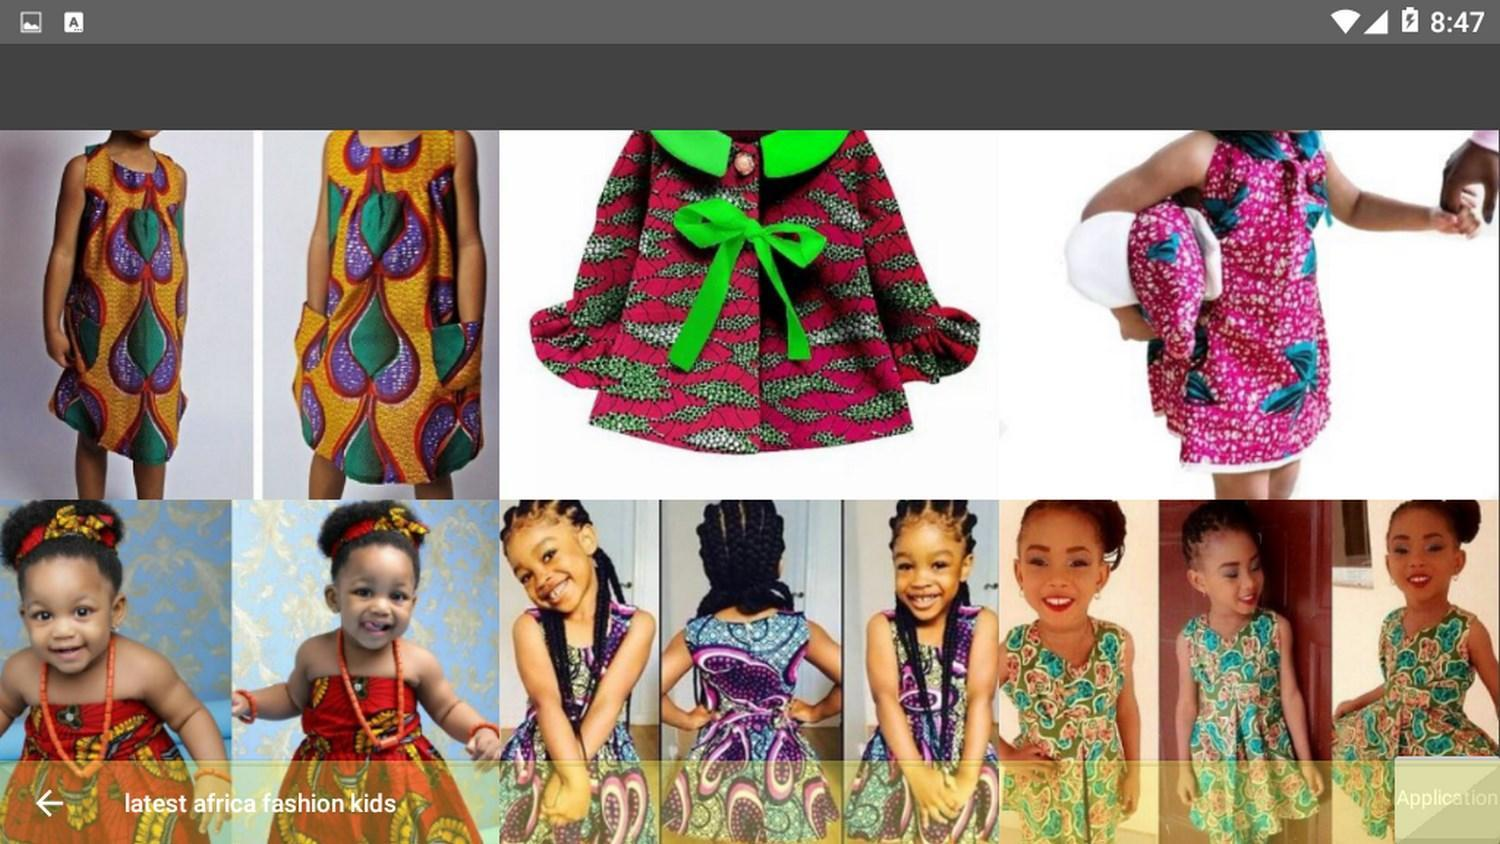 Latest Africa Fashion Kids For Android Apk Download